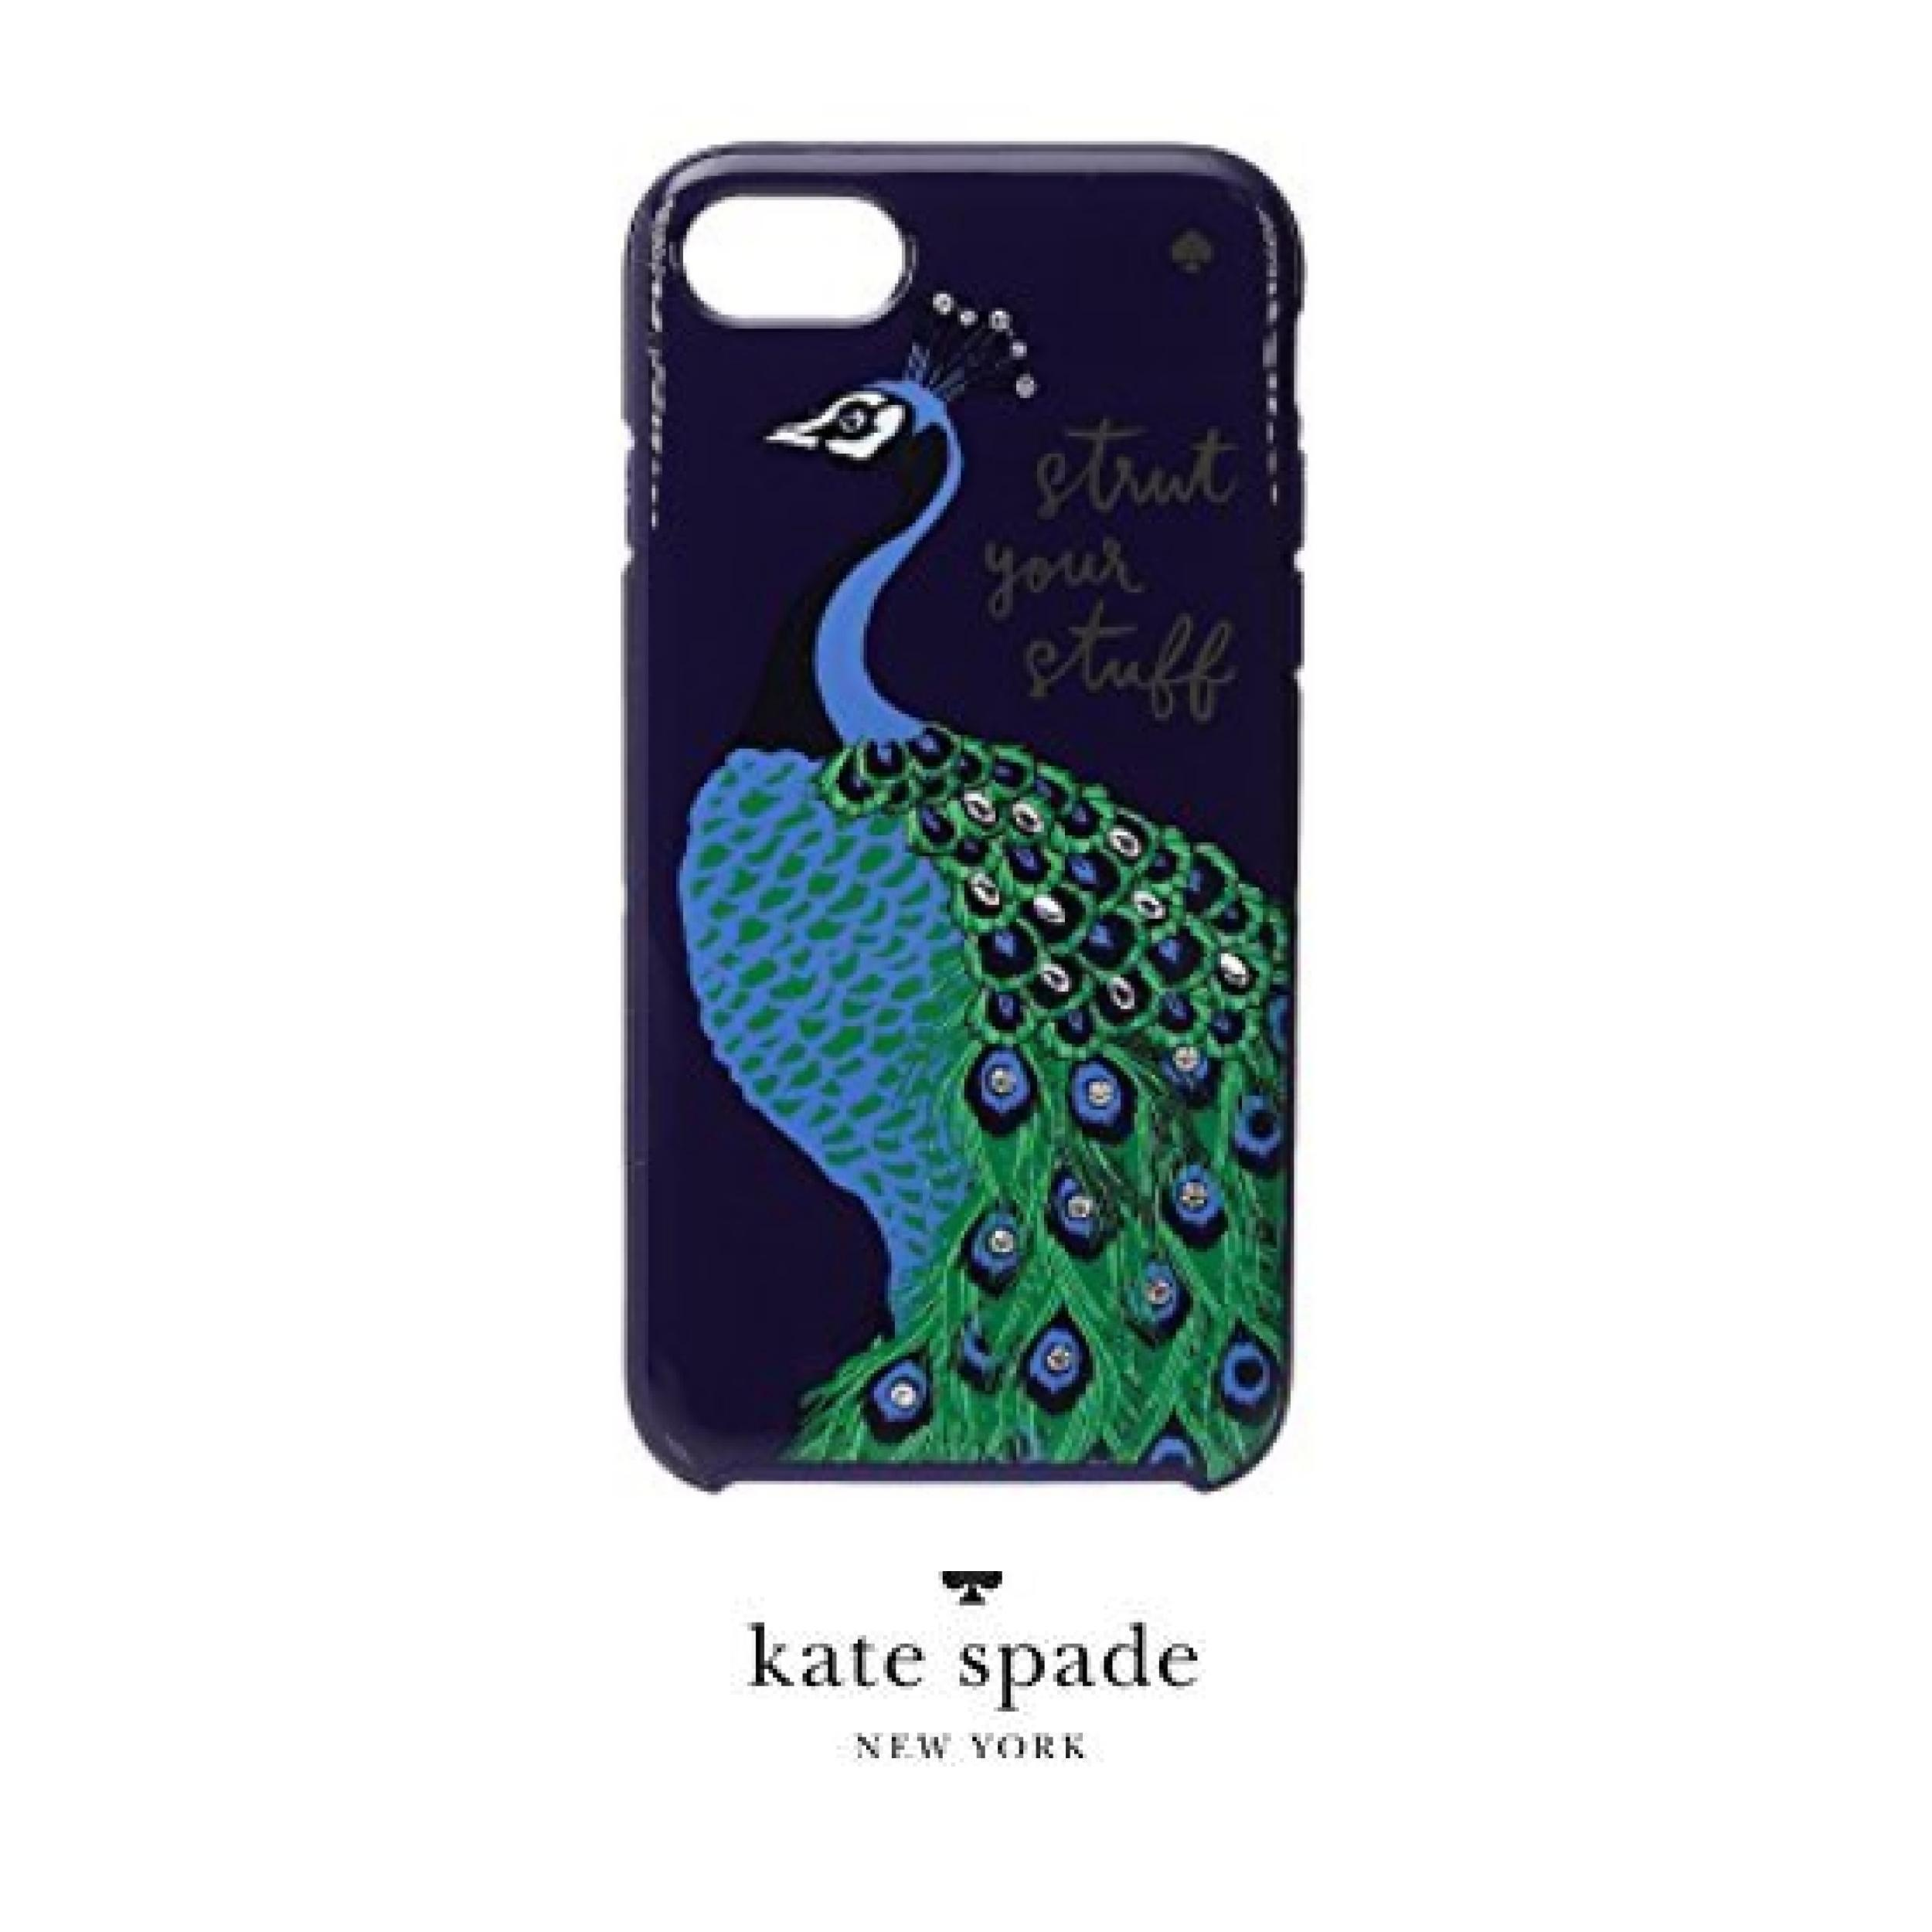 Kate Spade New York Strut Your Stuff Phone Case for iPhone7